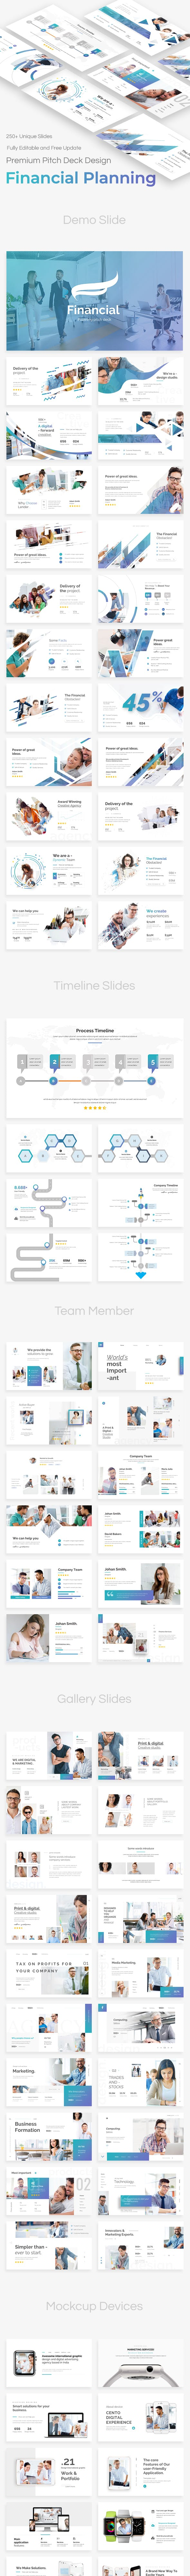 financial planning pitch deck powerpoint template by bypaintdesign